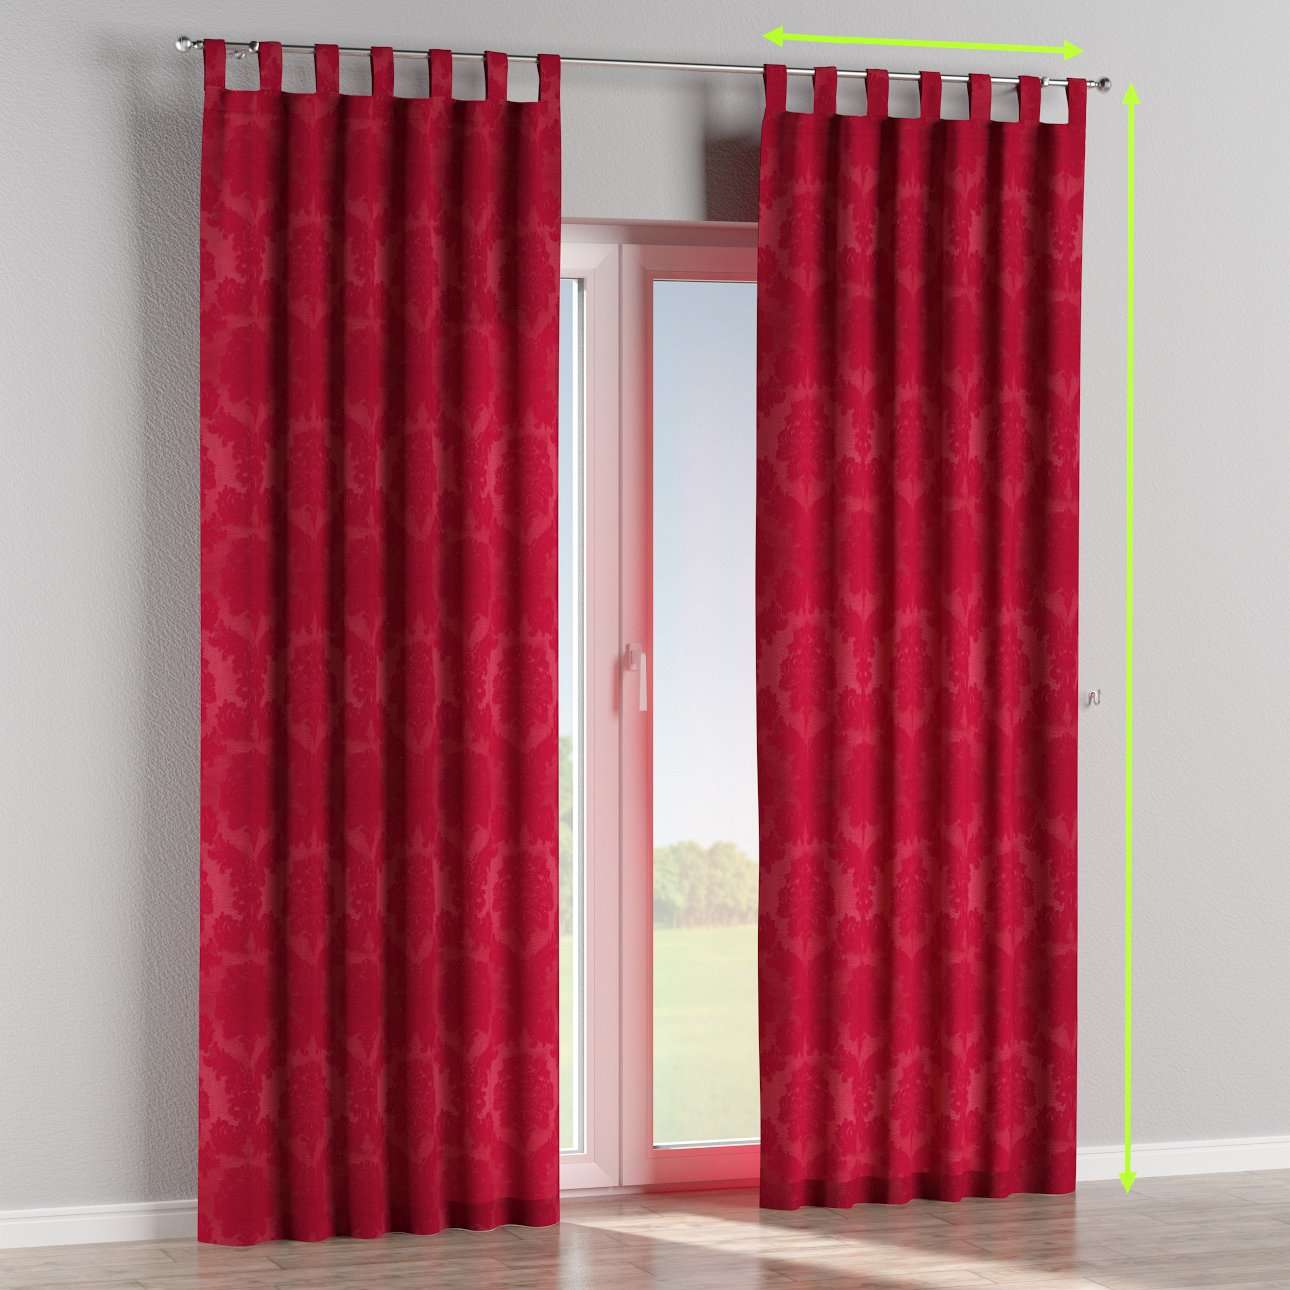 Tab top lined curtains in collection Damasco, fabric: 613-13